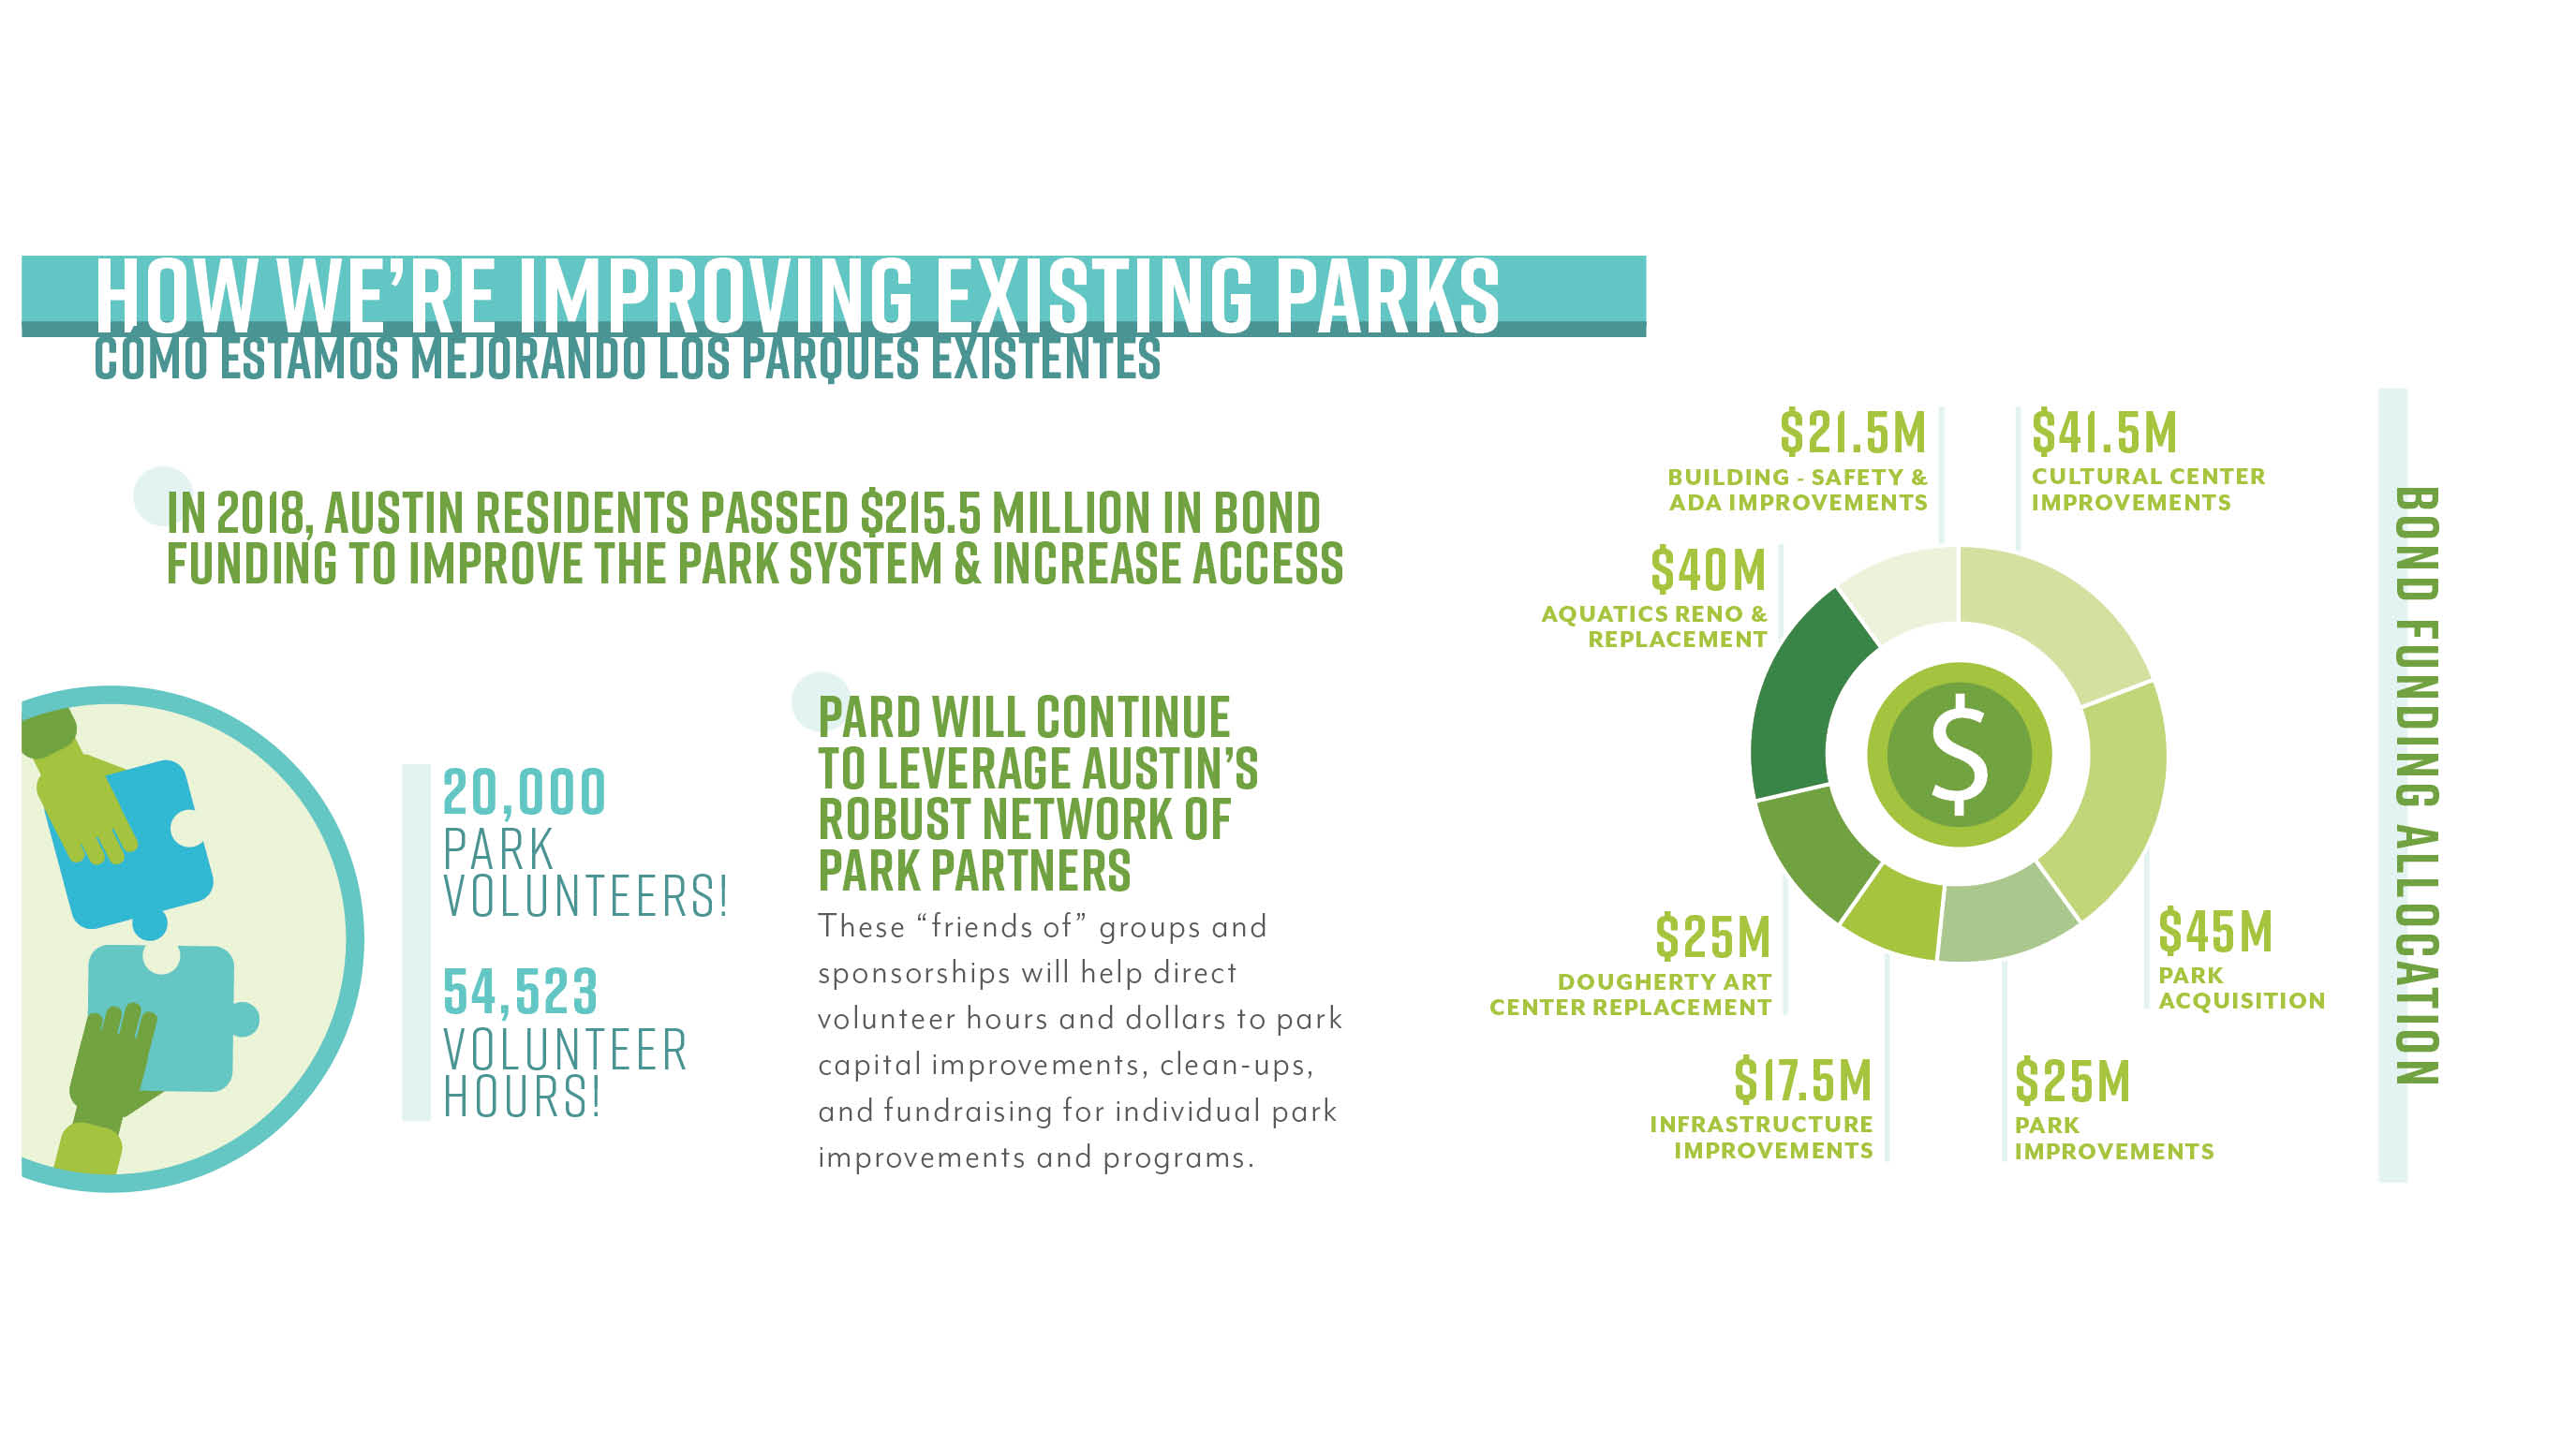 How we're improving existing parks